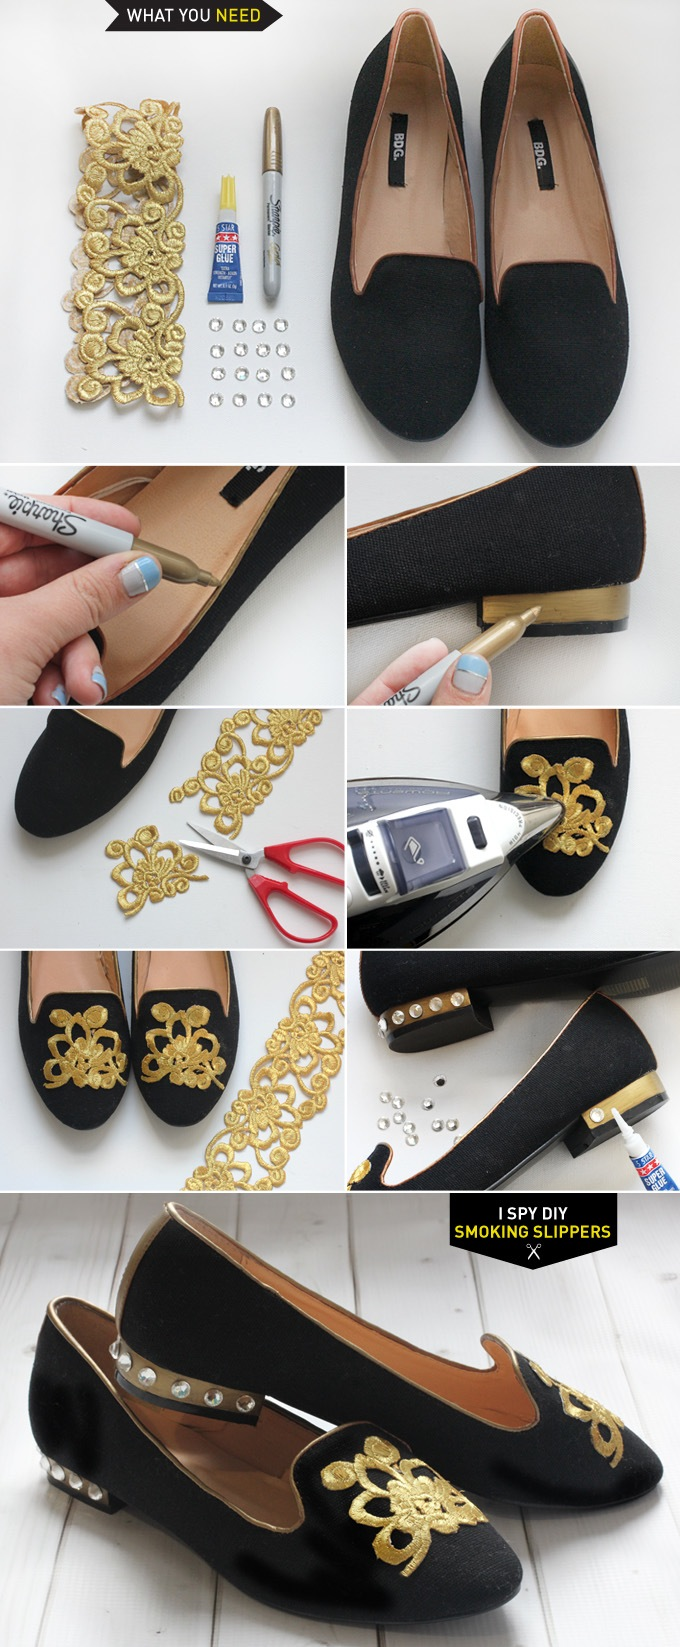 ispydiy_smokingslippers_steps